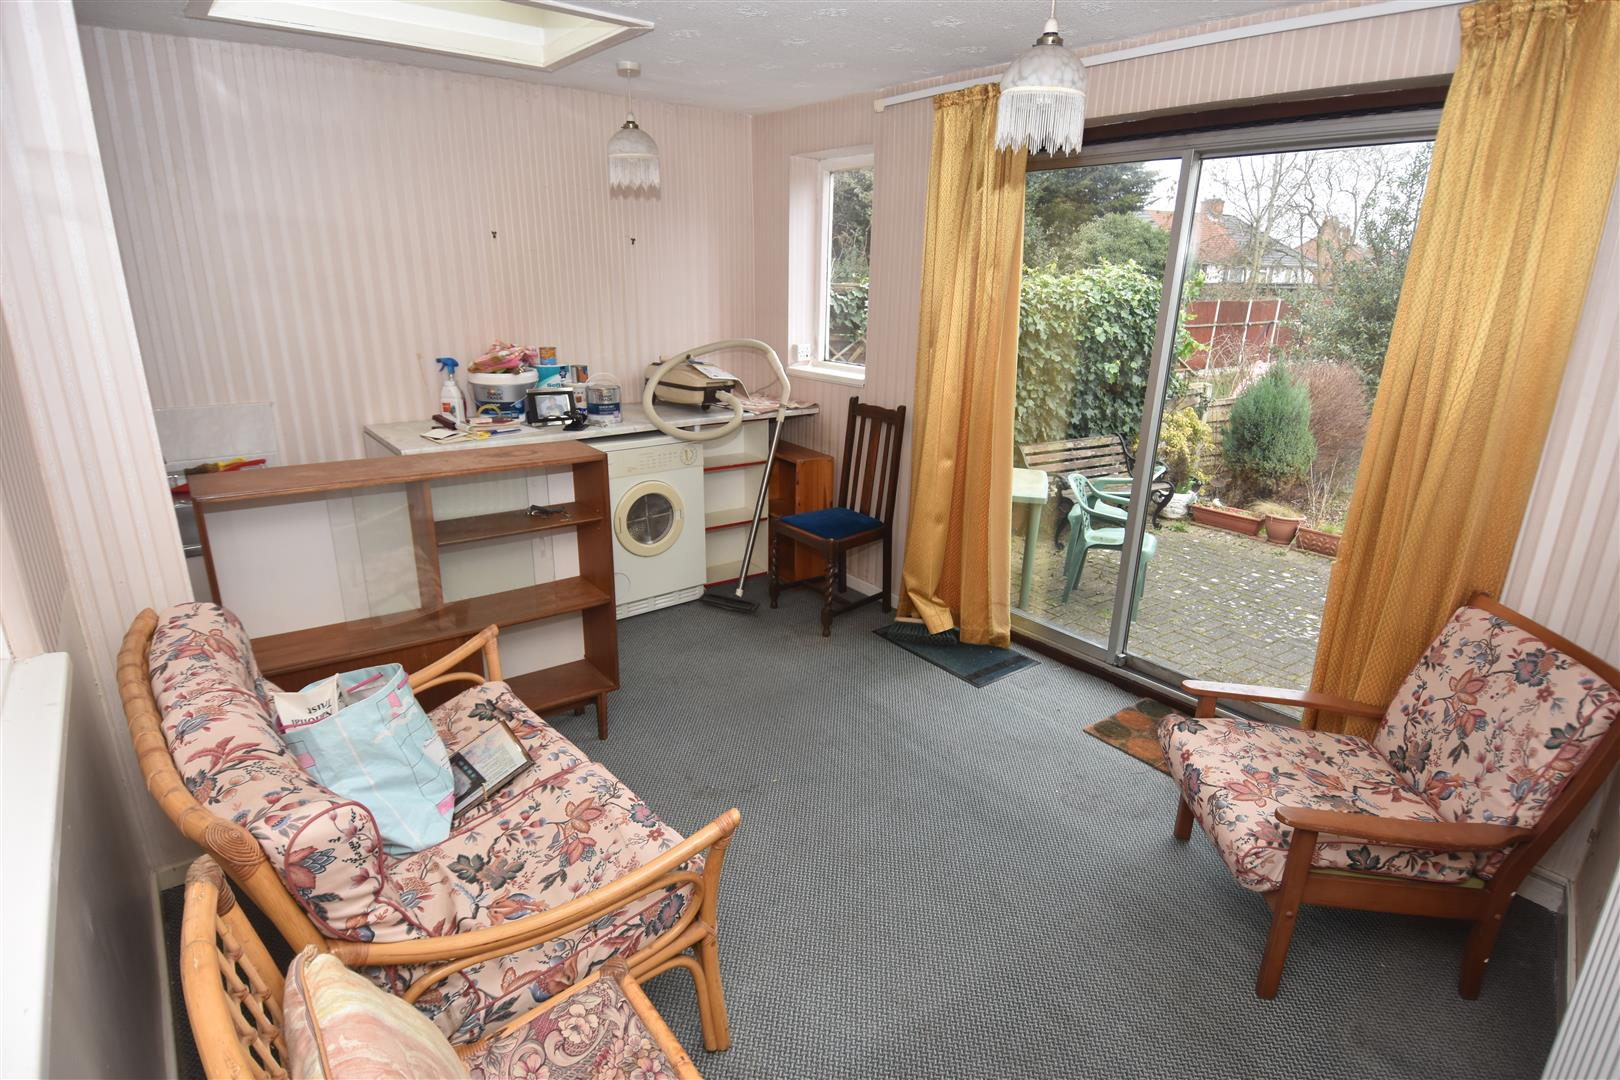 2 bed house for sale in Yardley Green Road, Stechford, Birmingham 6